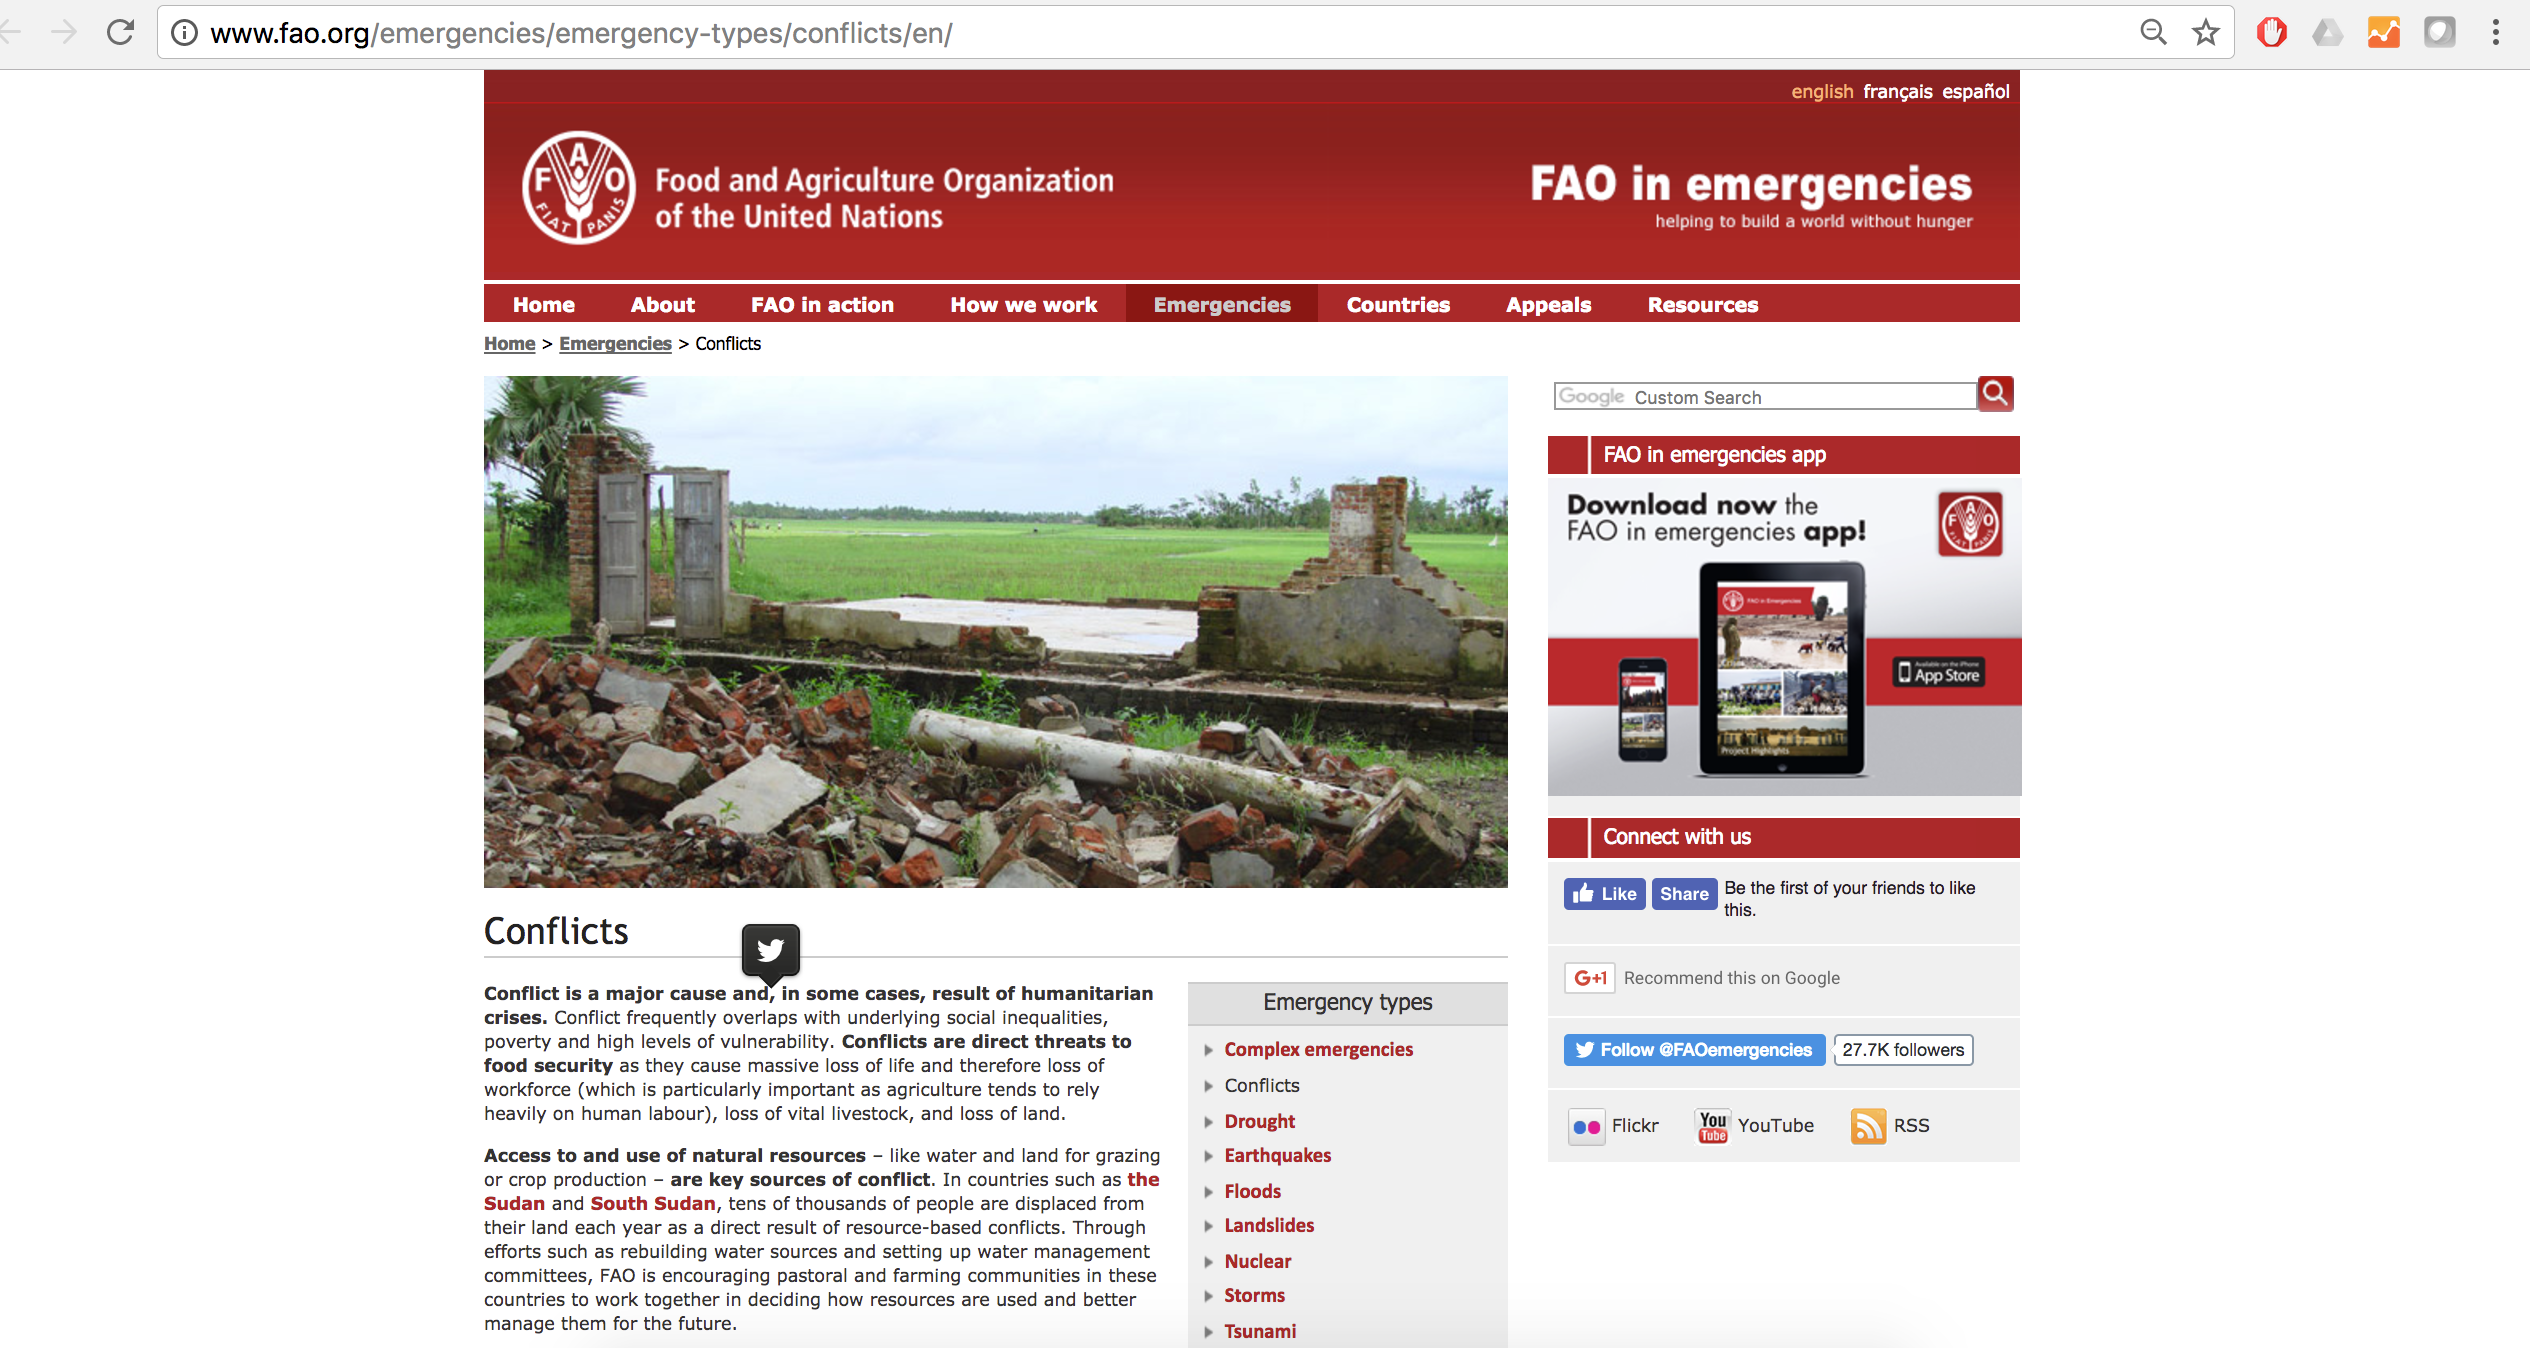 FAO in emergencies: conflicts cover image